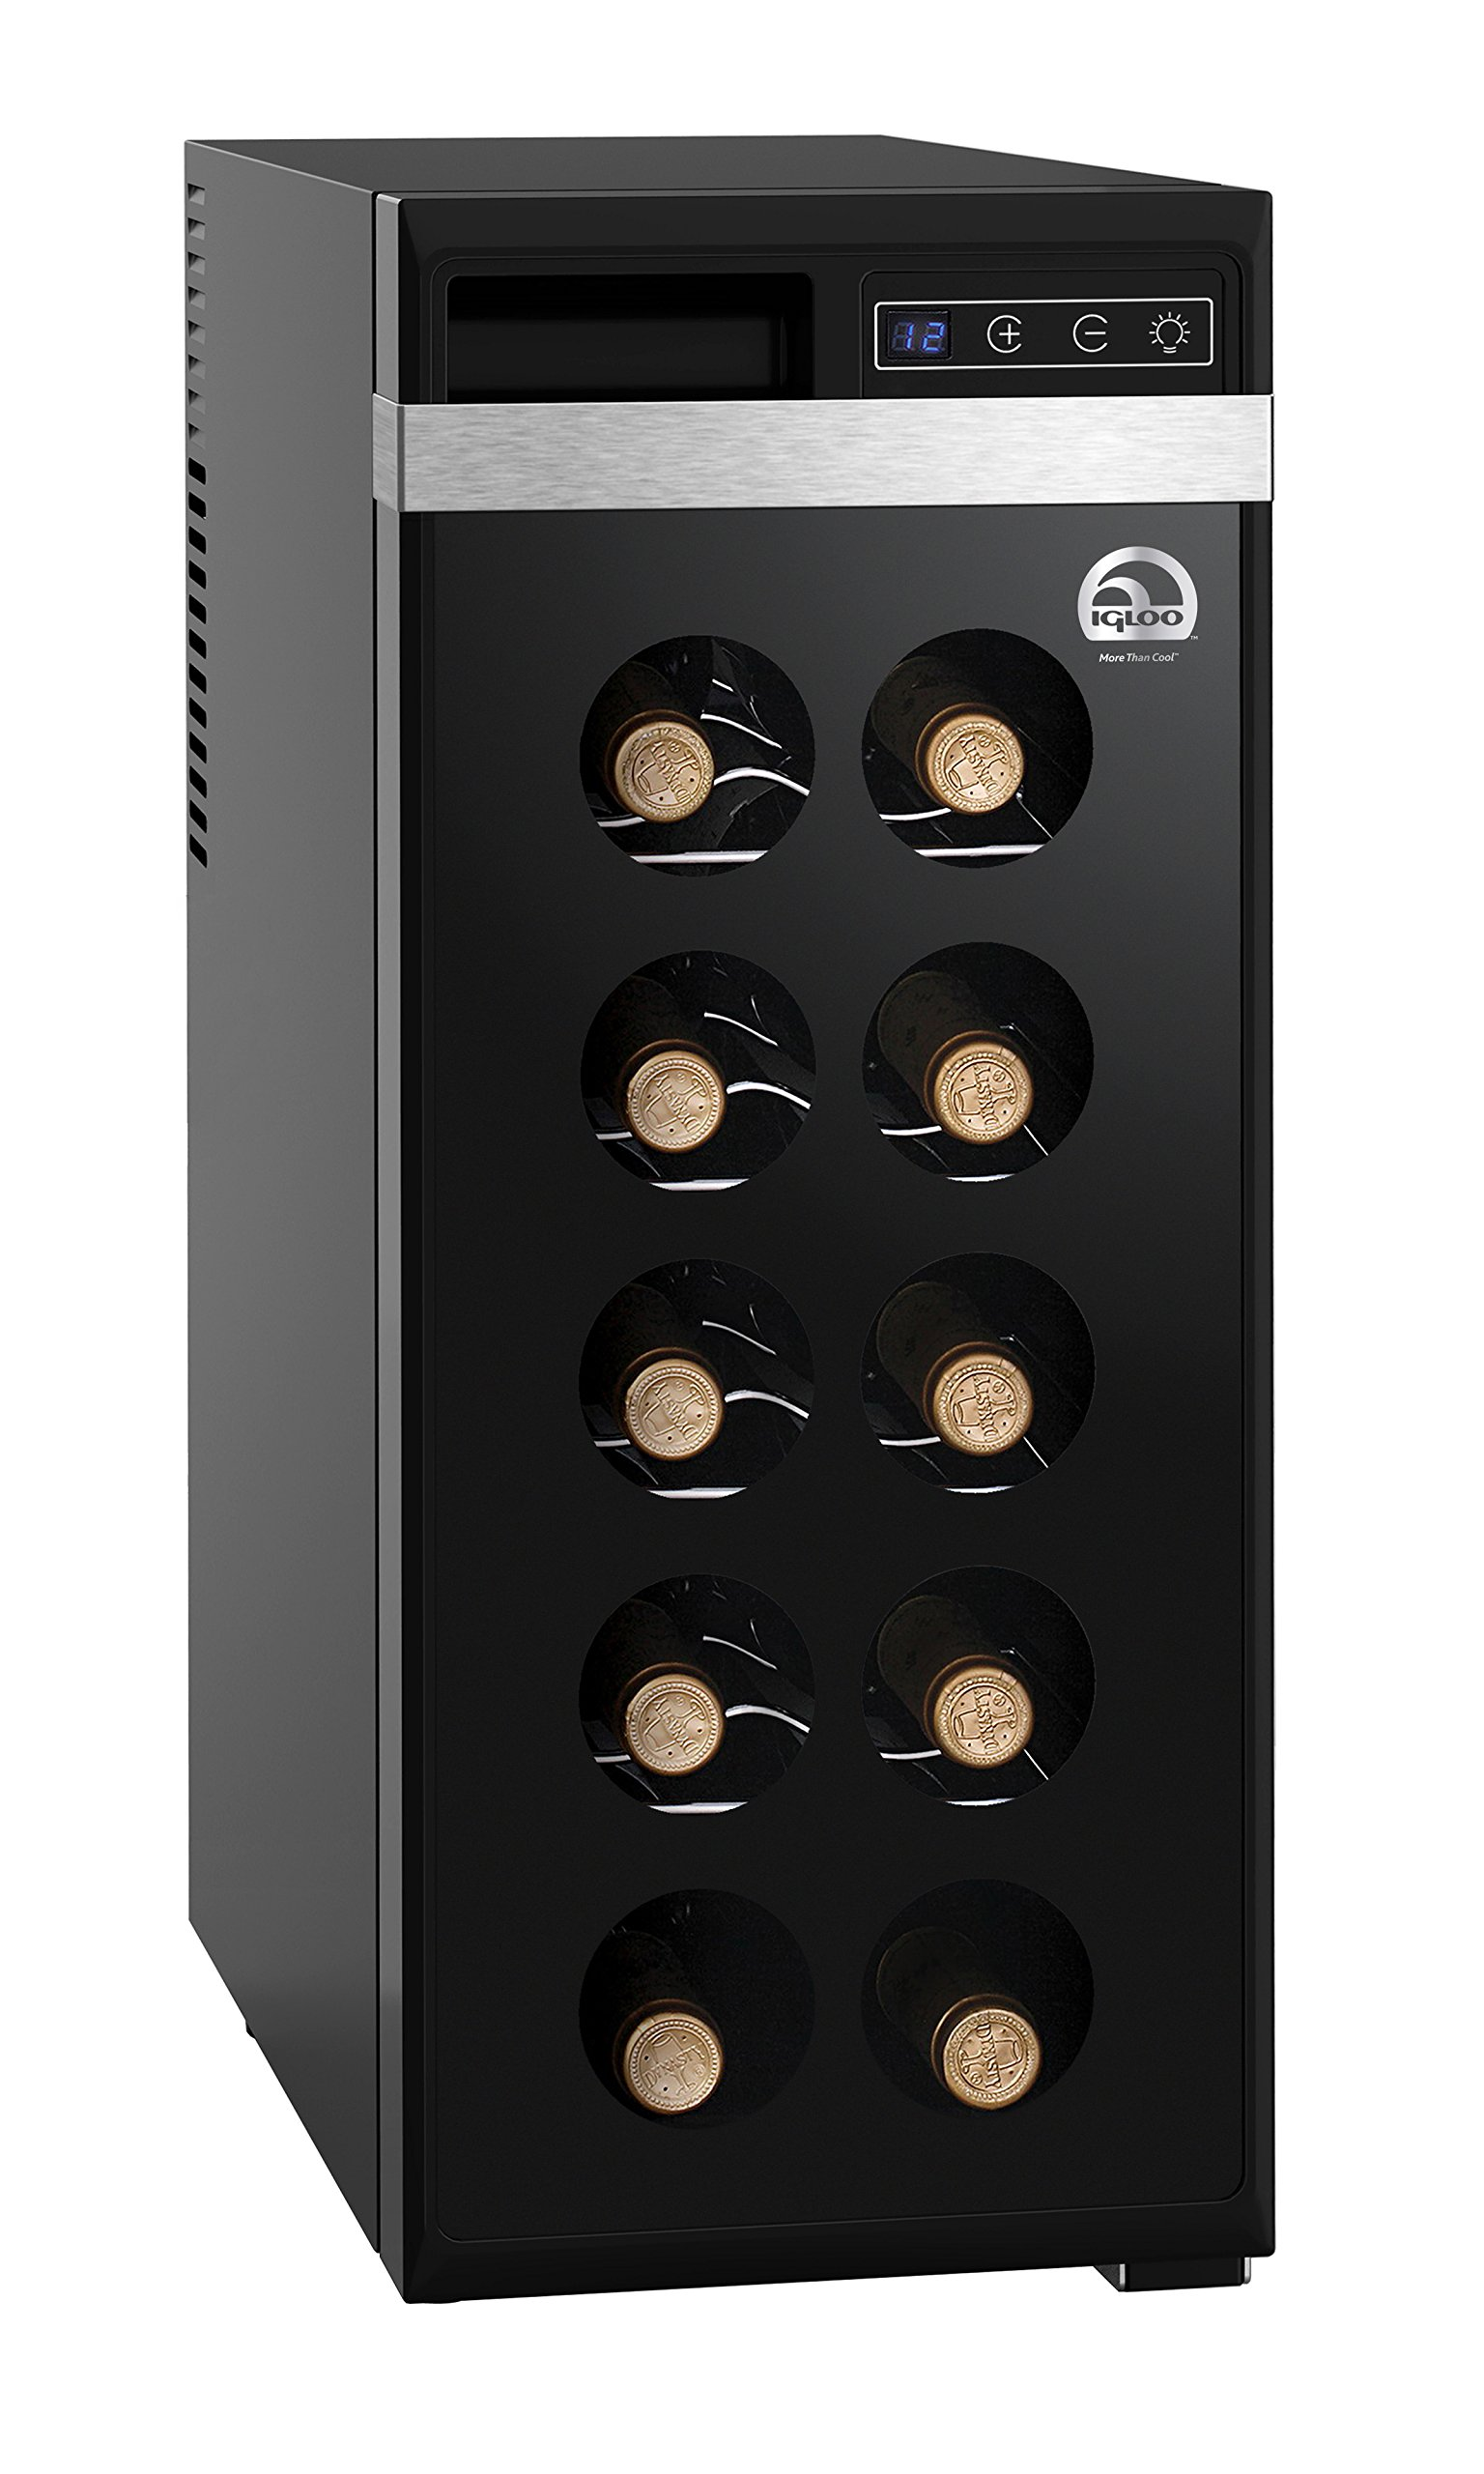 IGLOO FRW1213 12-Bottle Wine Cooler with Digital Controls, Black